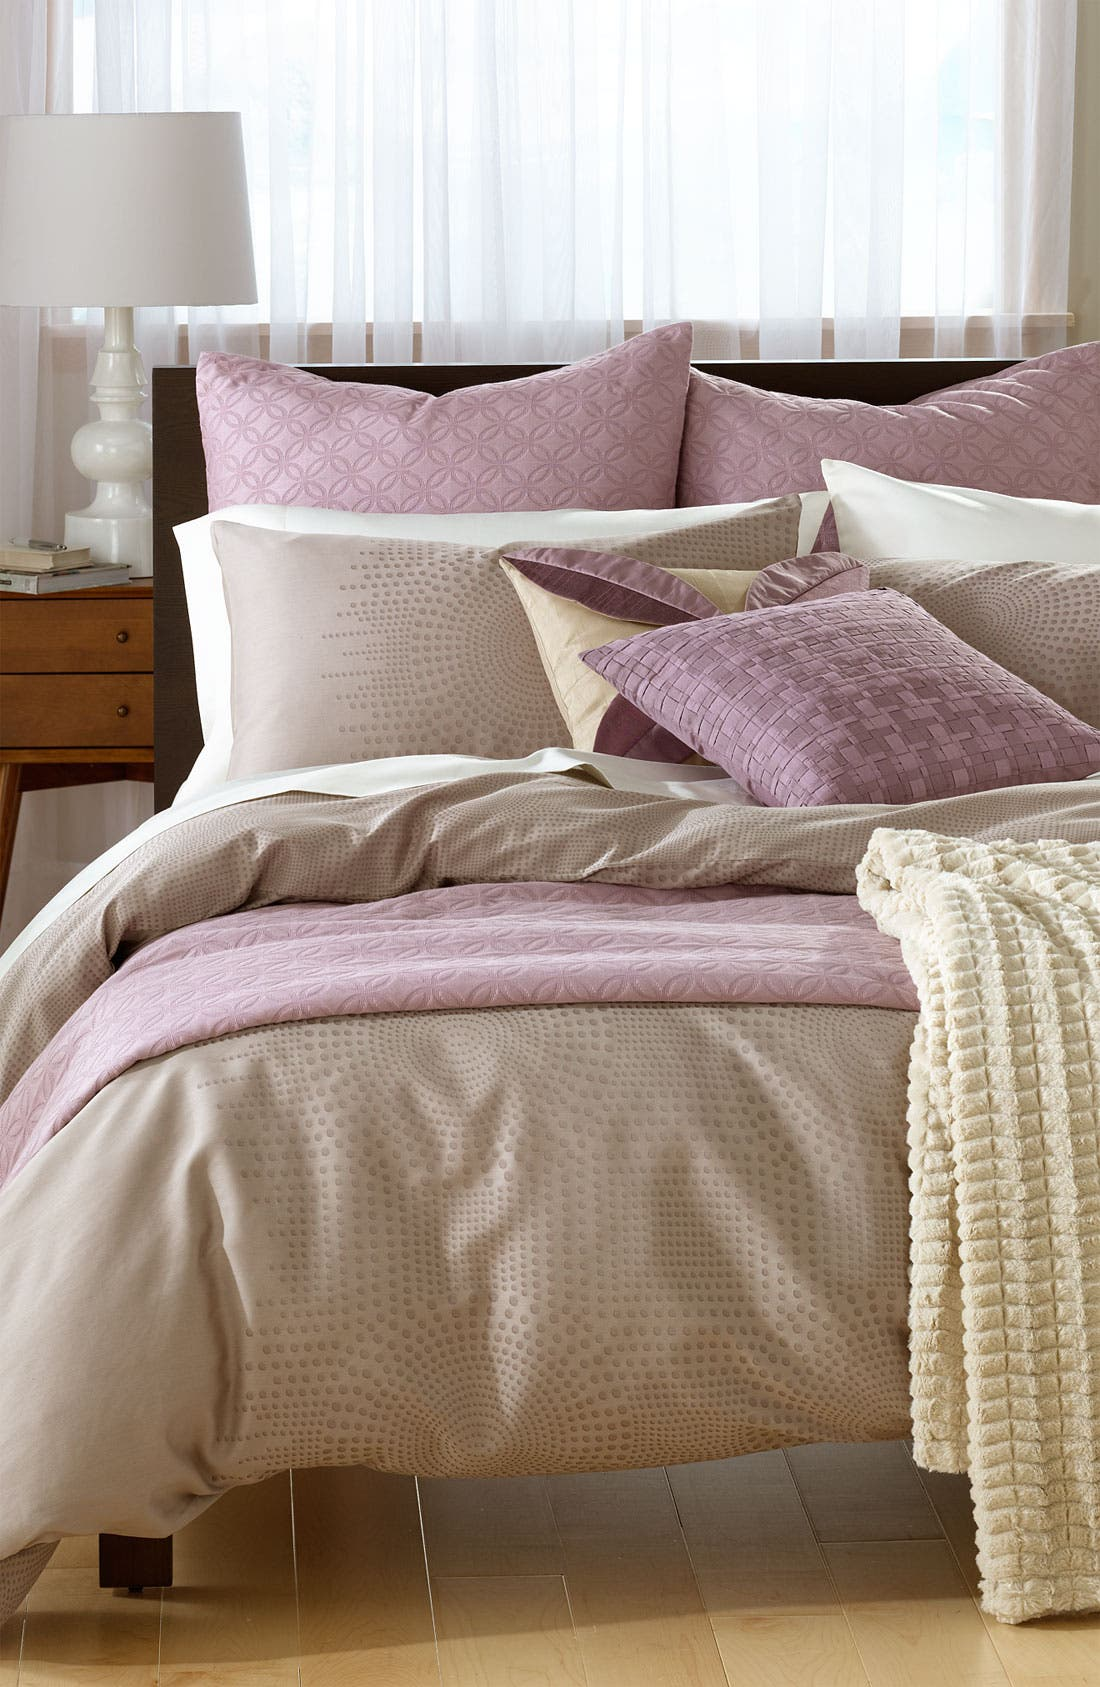 Alternate Image 2  - Nordstrom at Home 'Raindrops' Jacquard Duvet Cover